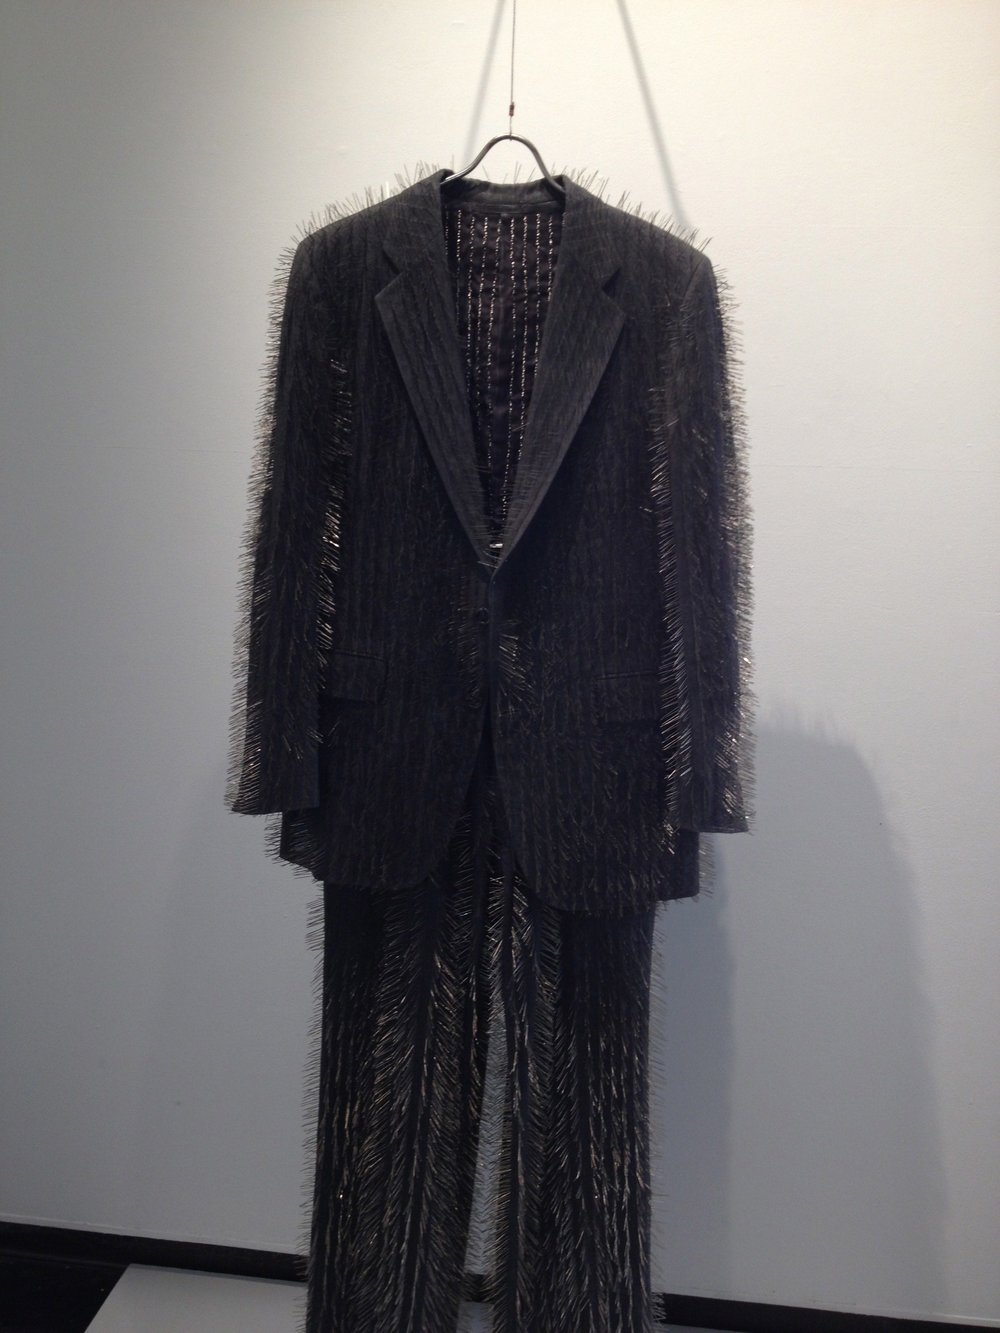 Eleanor White,  Pin Stripe Suit , 2002, pins, fabric, 62 x 24 x 7 inches